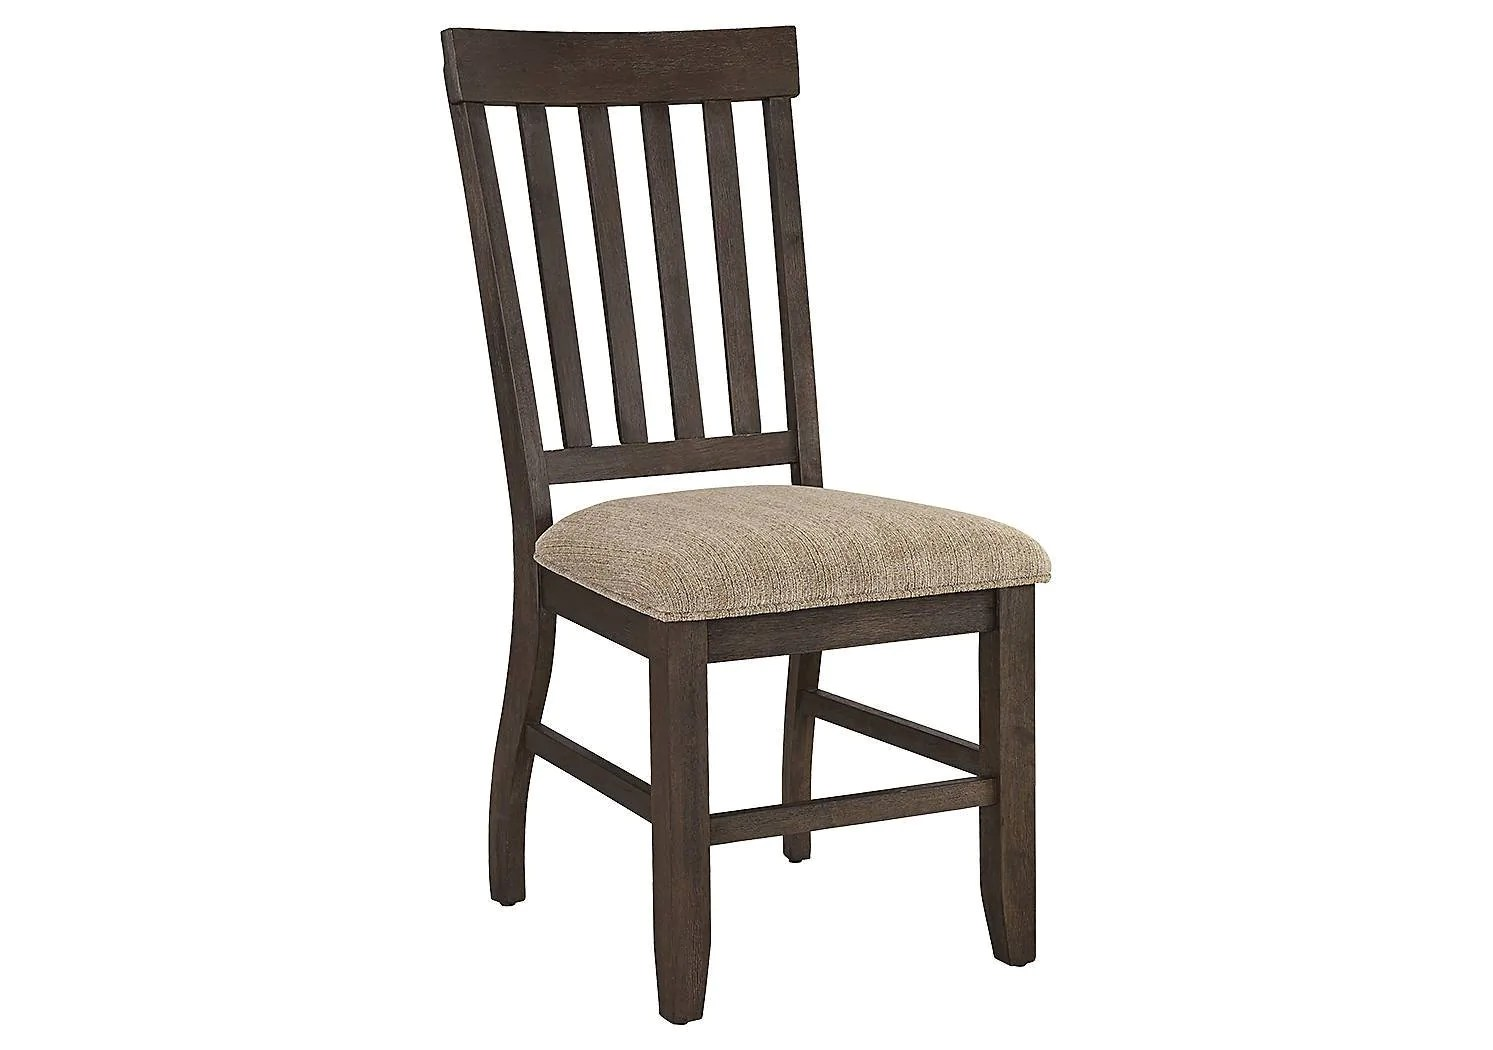 Ashley Chairs Kagans Home Ashley Signature Chairs Dresbar Dining Uph Side